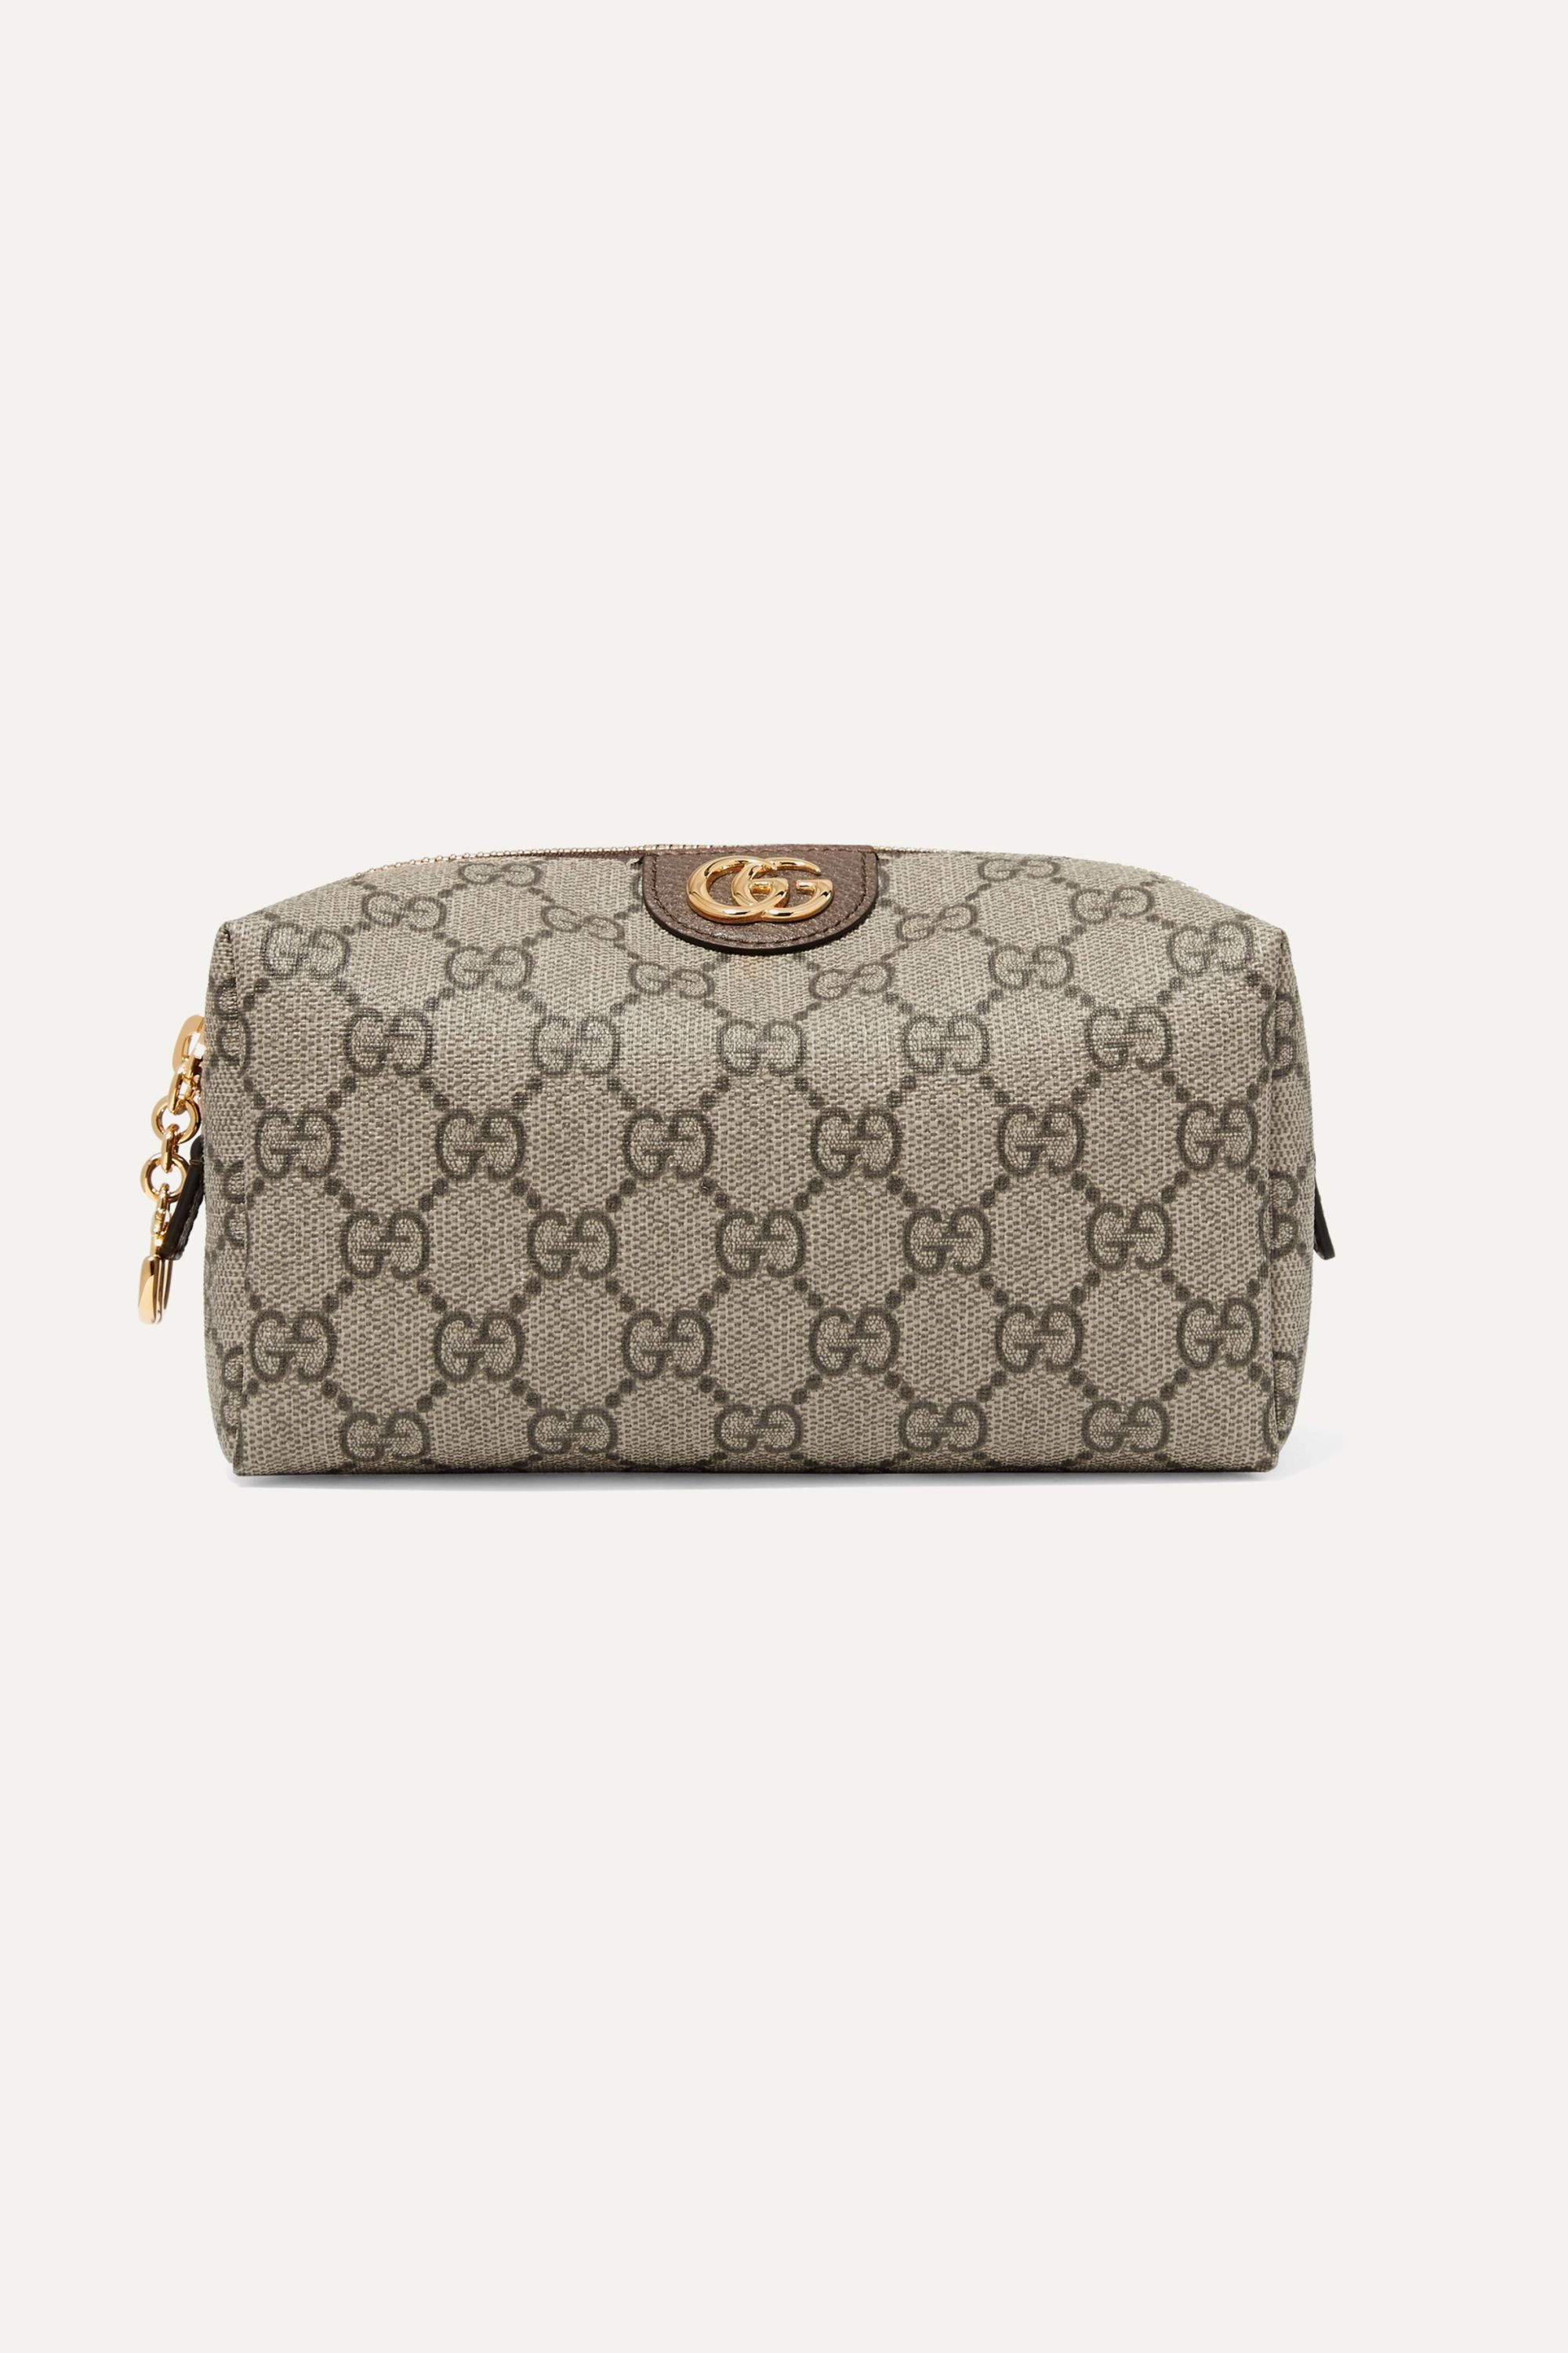 Gucci Ophidia medium textured leather-trimmed printed coated-canvas cosmetics case